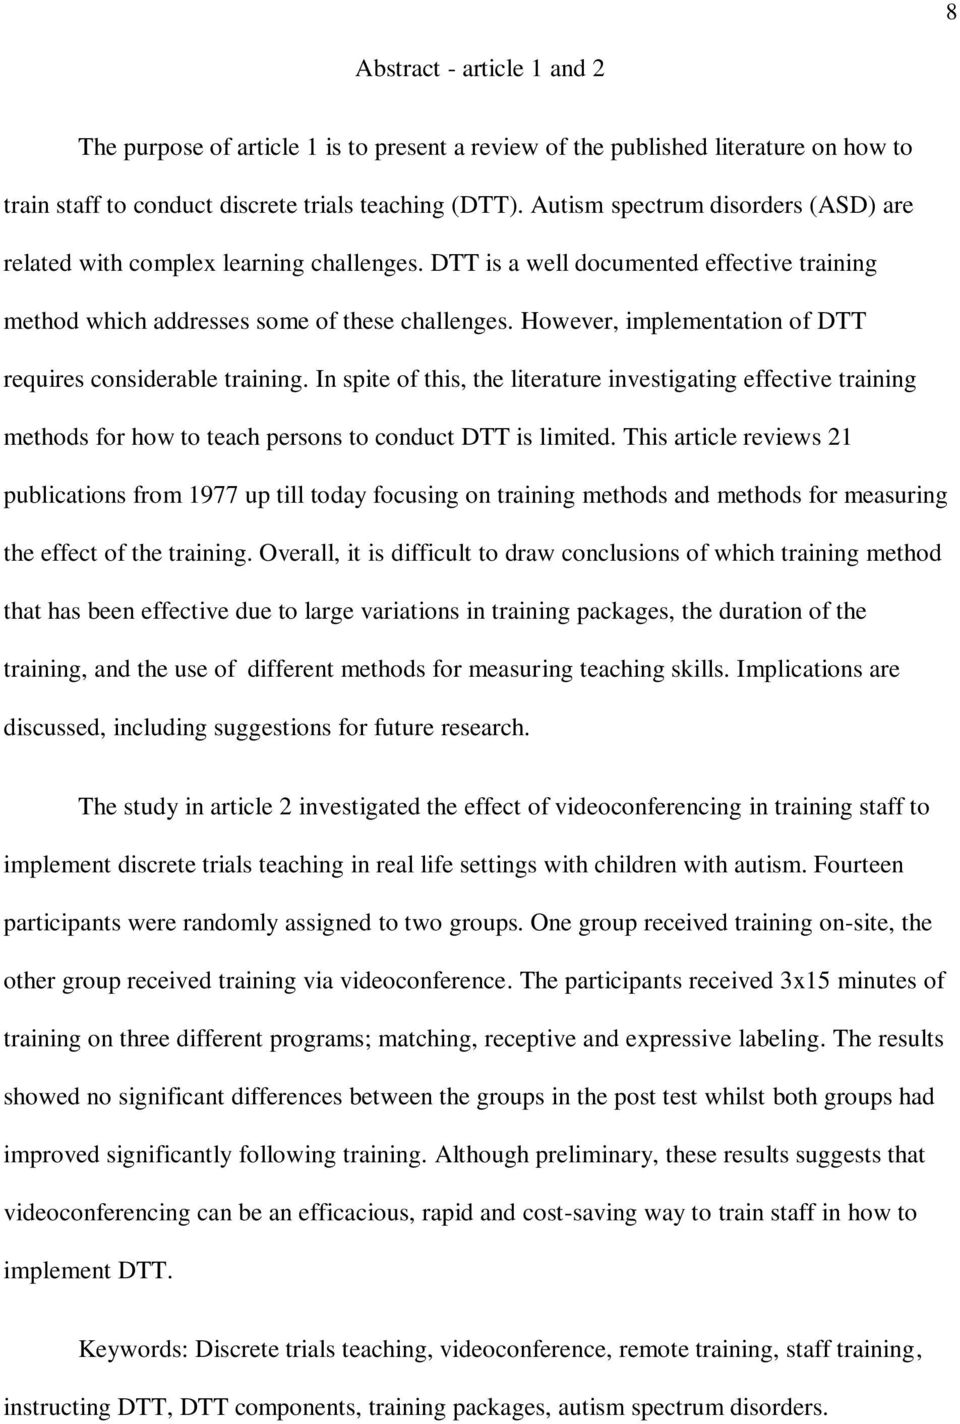 However, implementation of DTT requires considerable training. In spite of this, the literature investigating effective training methods for how to teach persons to conduct DTT is limited.